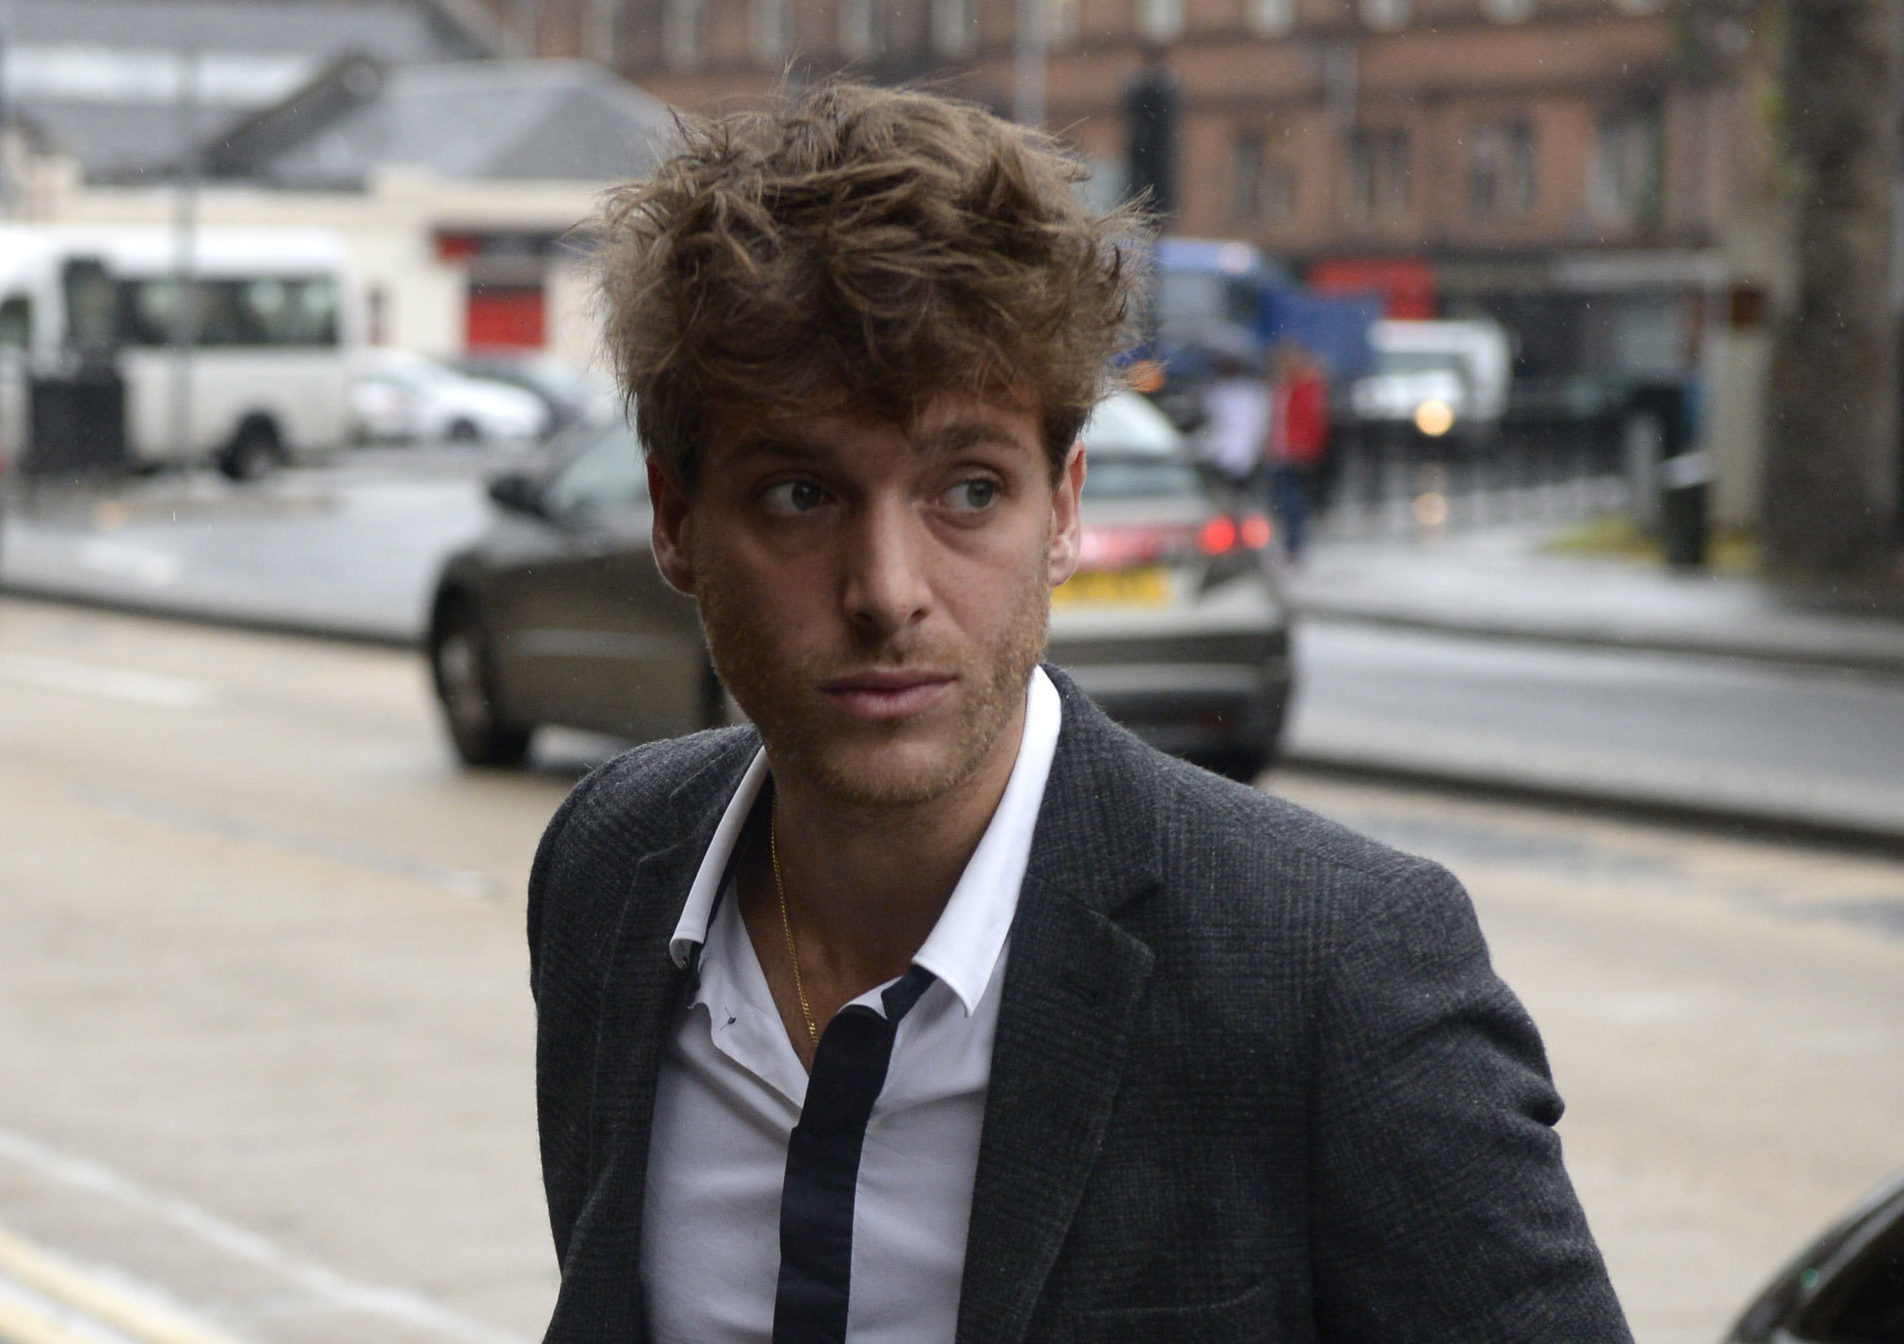 Scottish singer Paolo Nutini (SWNS)